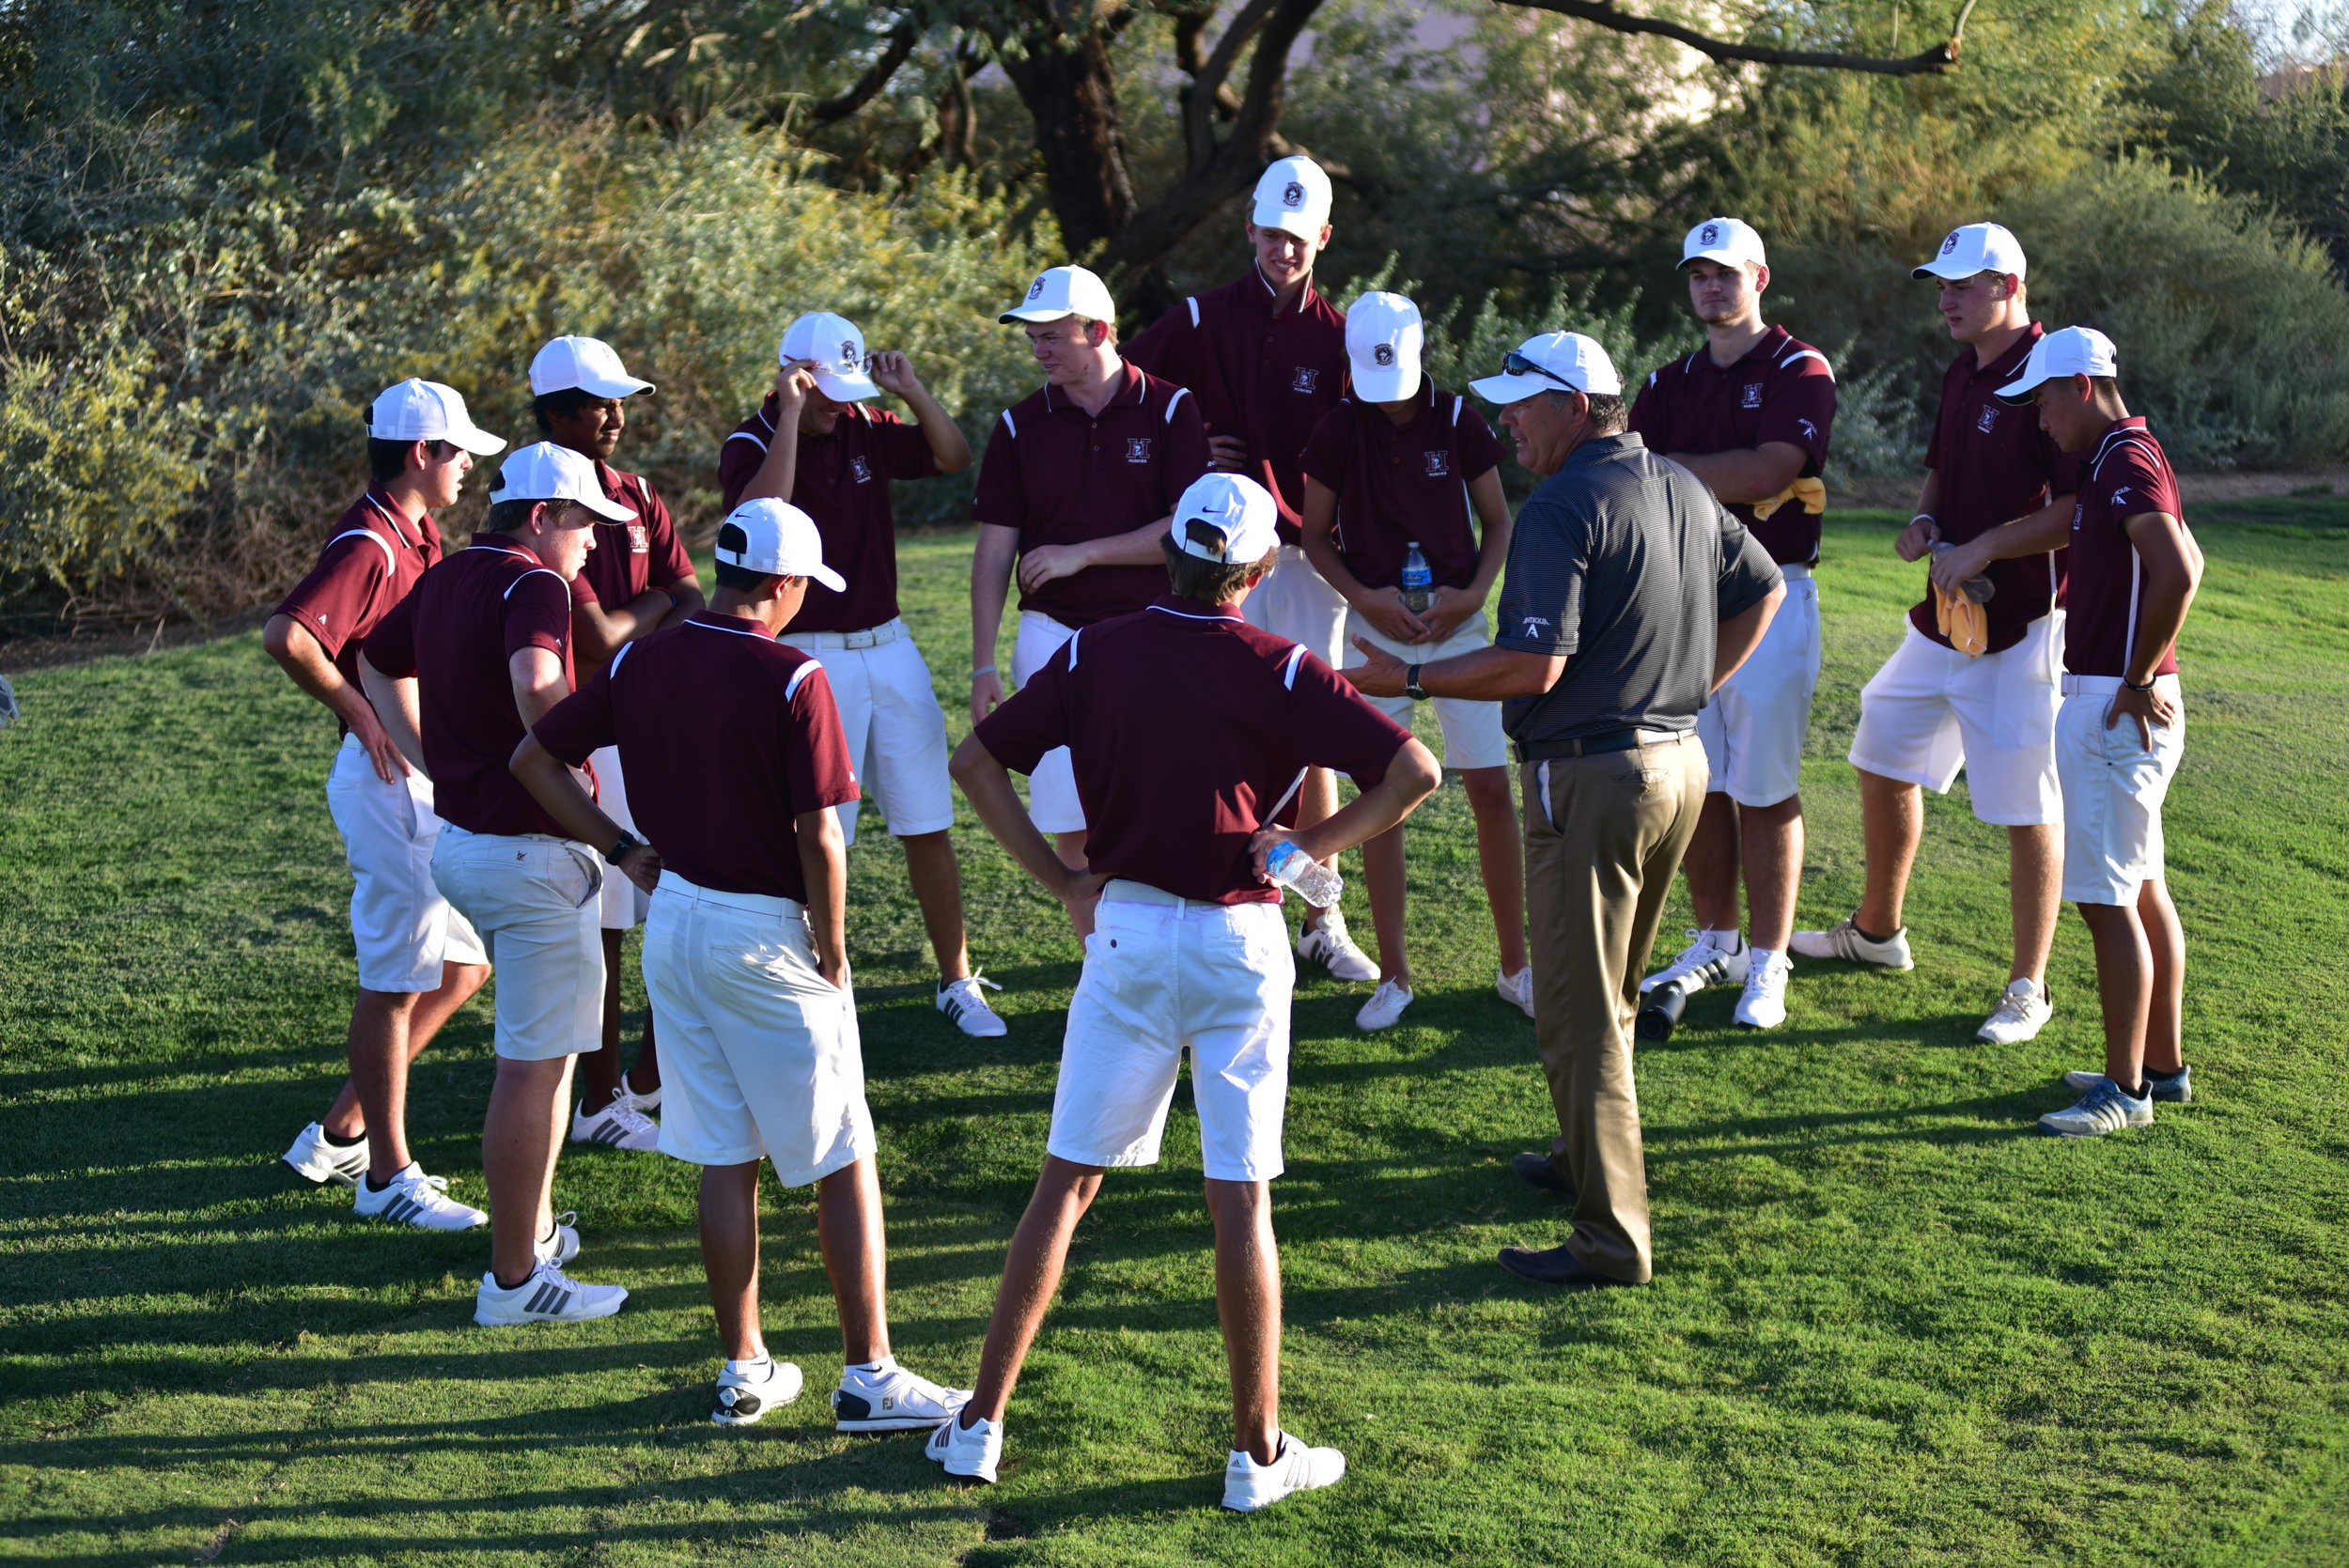 The HHS Boys Golf team continued its winning ways with an impressive match win against Williams Field, Highland and Higley HS at Whirlwind Golf Club in Chandler today. Senior Alexander Yu set a new school 9-hole Scoring Record with an incredible round of 31 (-5) that included 3 birdies and an eagle! Sophomore Johnny Walker also turned in an under par round of 35 and both senior Caden Rice and freshman Mahanth Chiravurri shot one over par 37's. Senior Kanoah Cunningham shot a 39 on the difficult Cattail Course.